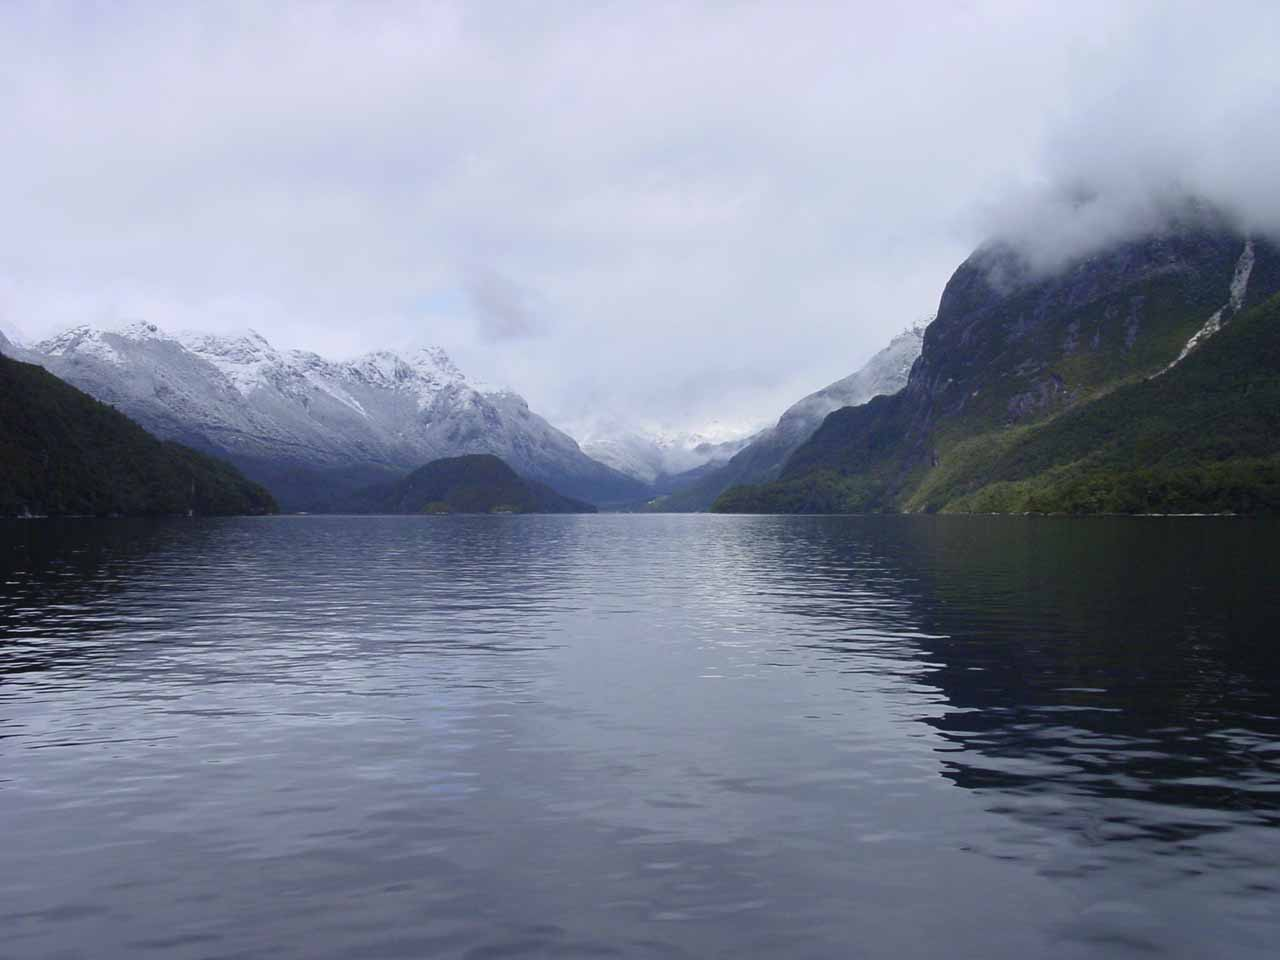 Broad panorama of the scene in front of our vessel as we cruised Lake Manapouri